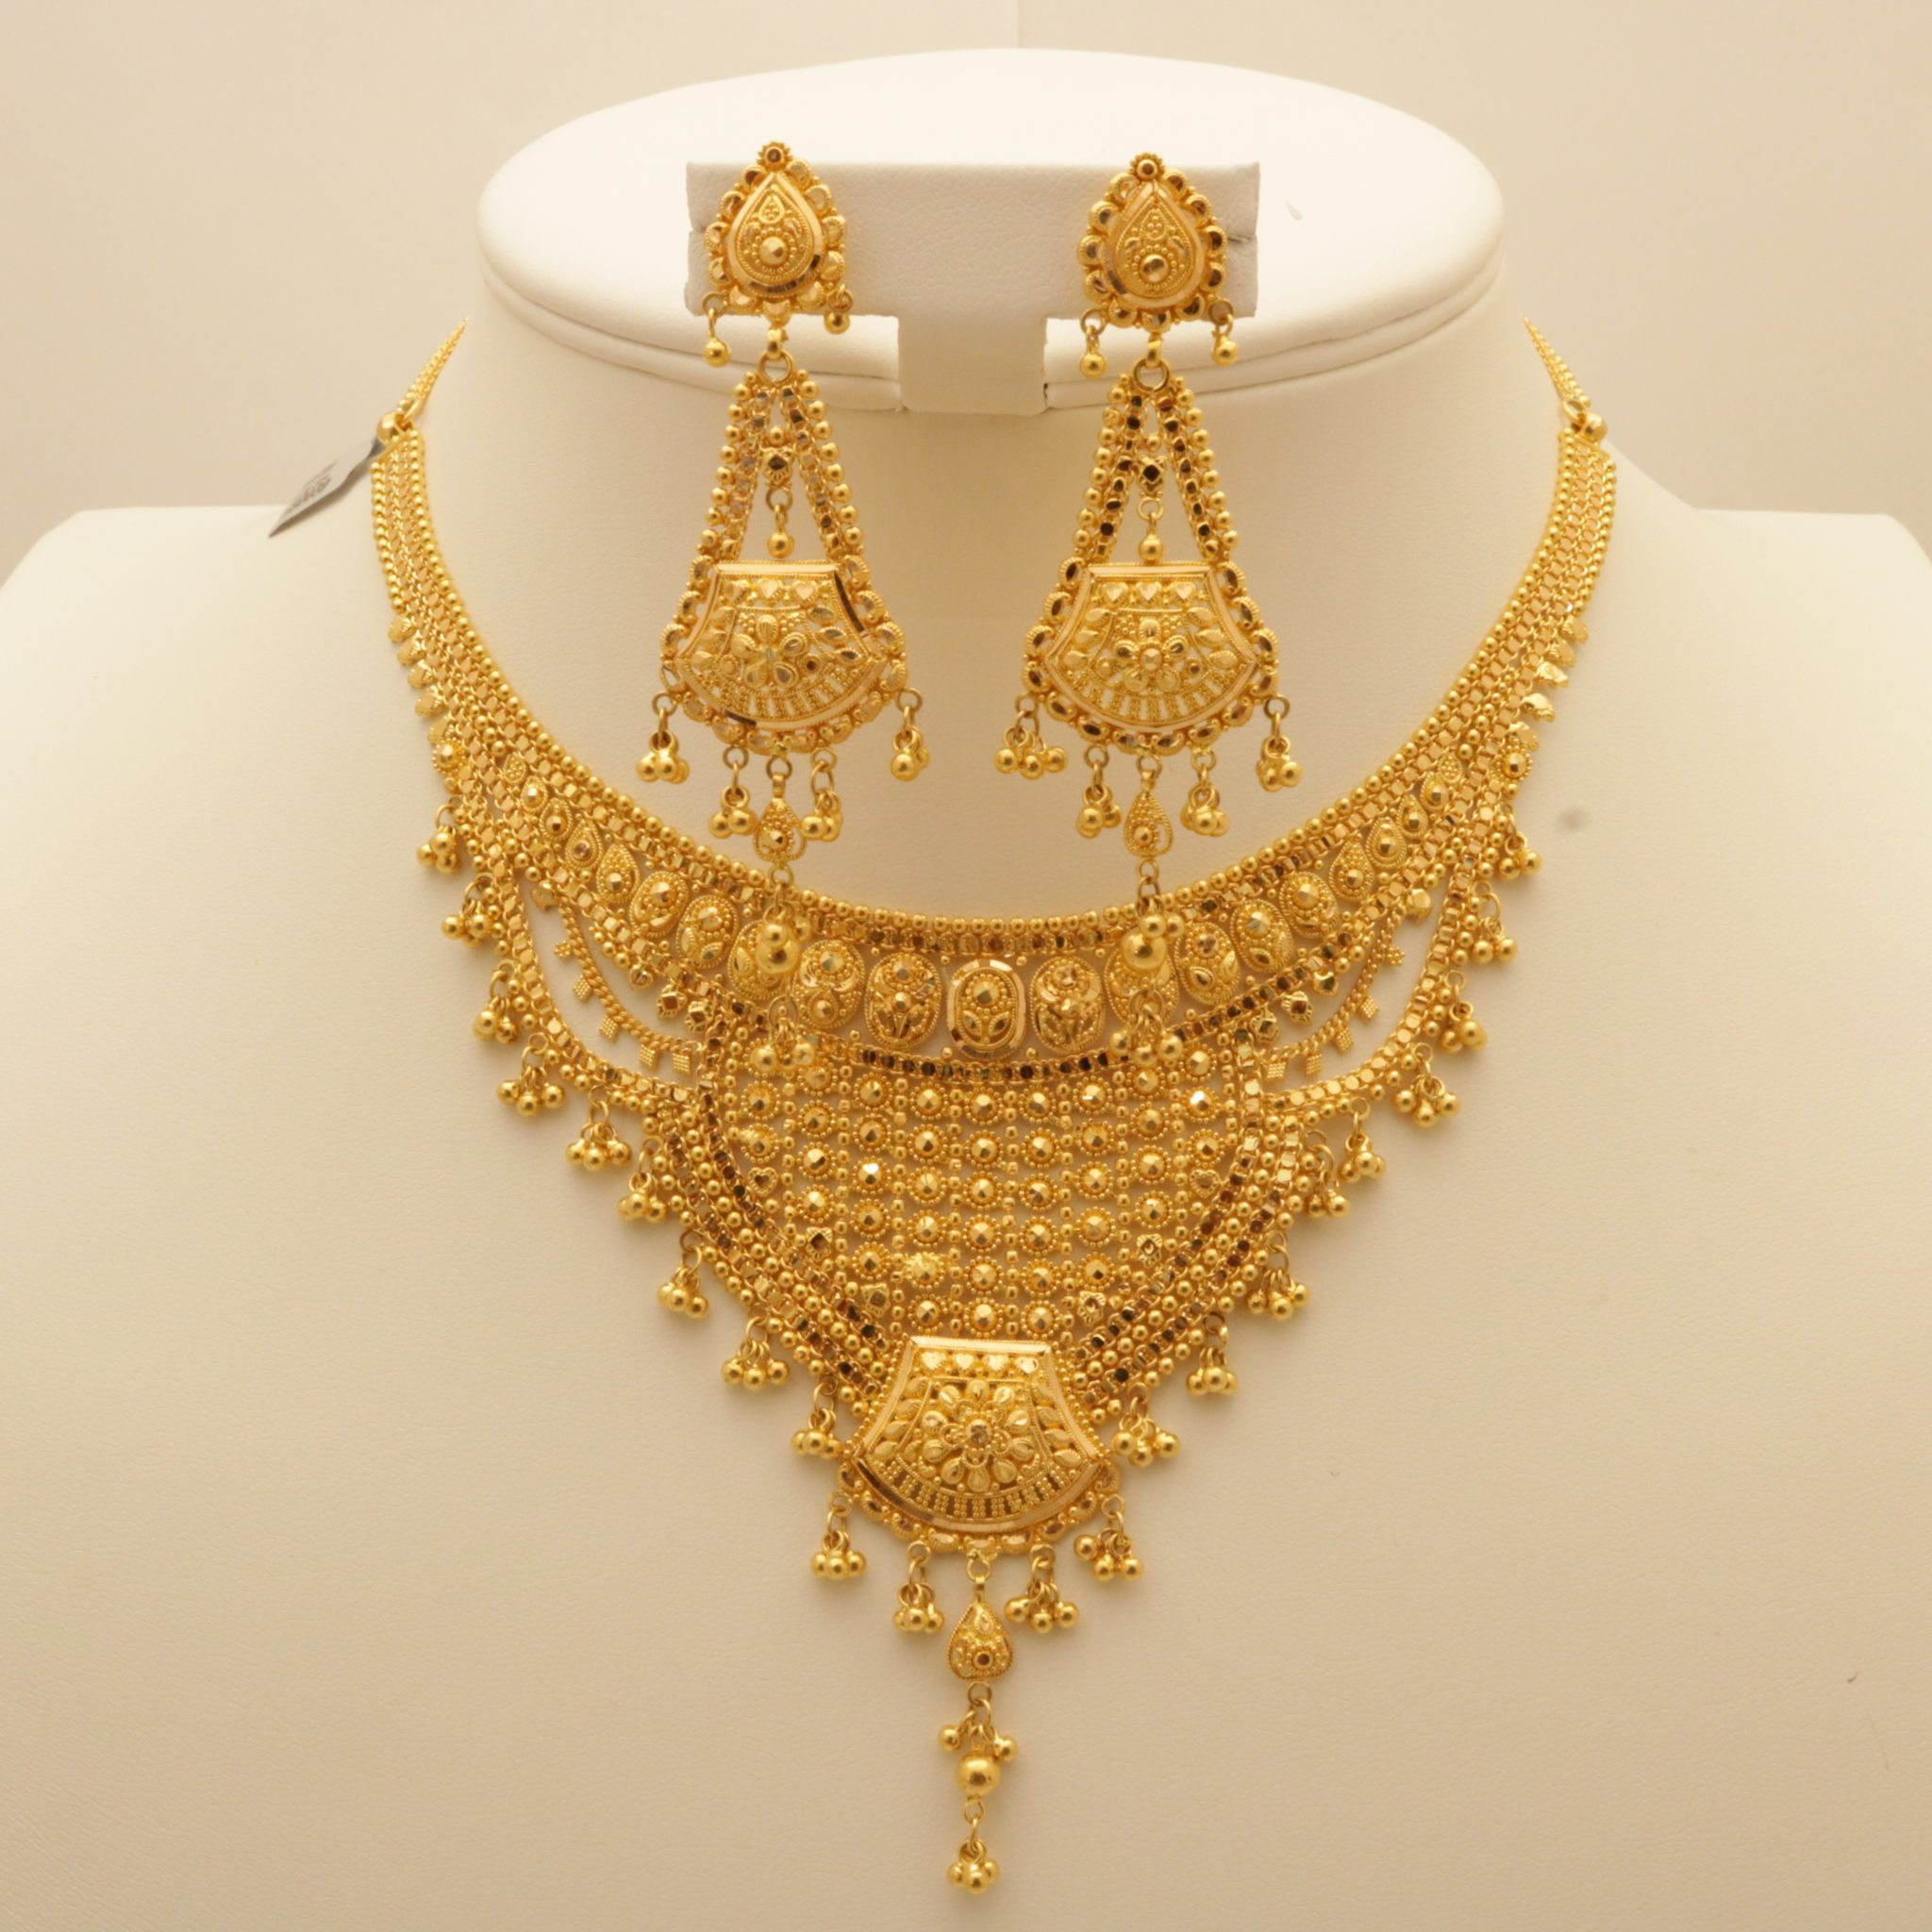 new jewelry hd wallpaper inspirational photos gram indian antique gold of necklace